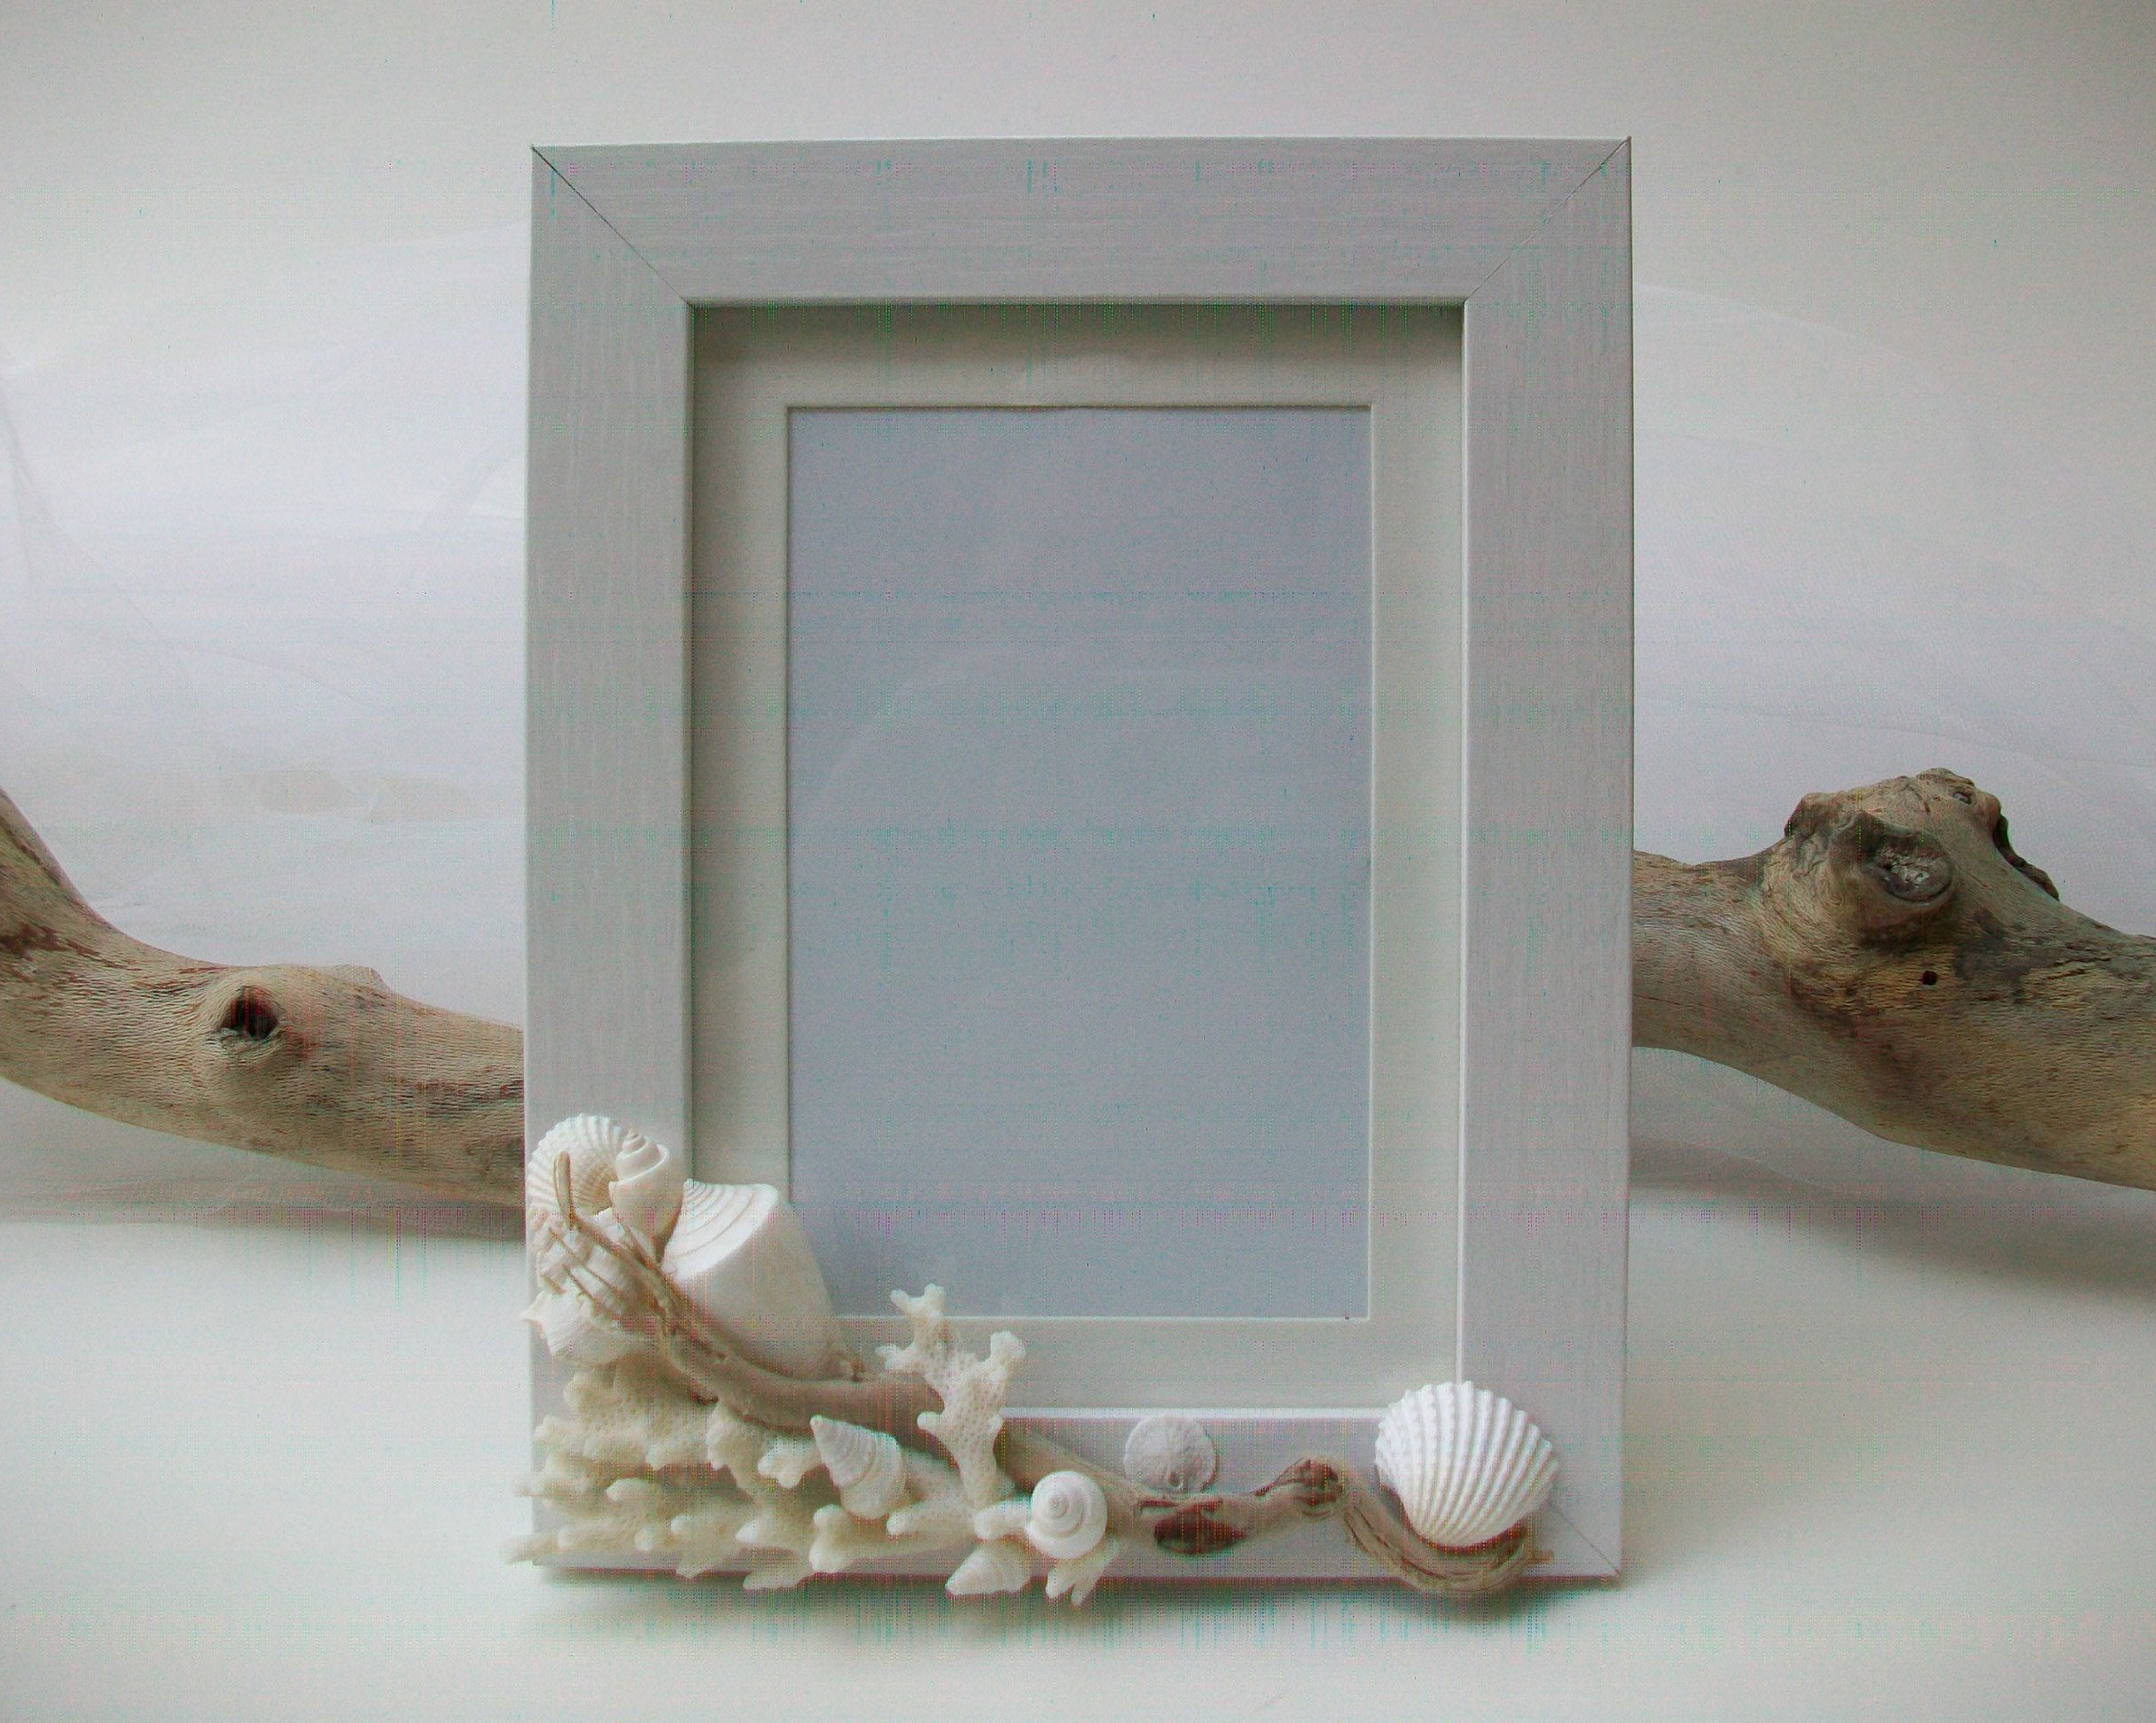 Beach Theme Wedding Photo Frame Shell Coral Driftwood Picture Frame Engagement Wedding Memorial Frame Home Decor Gift Personalized Framed Wedding Photos Beach Theme Wedding Beach Themes